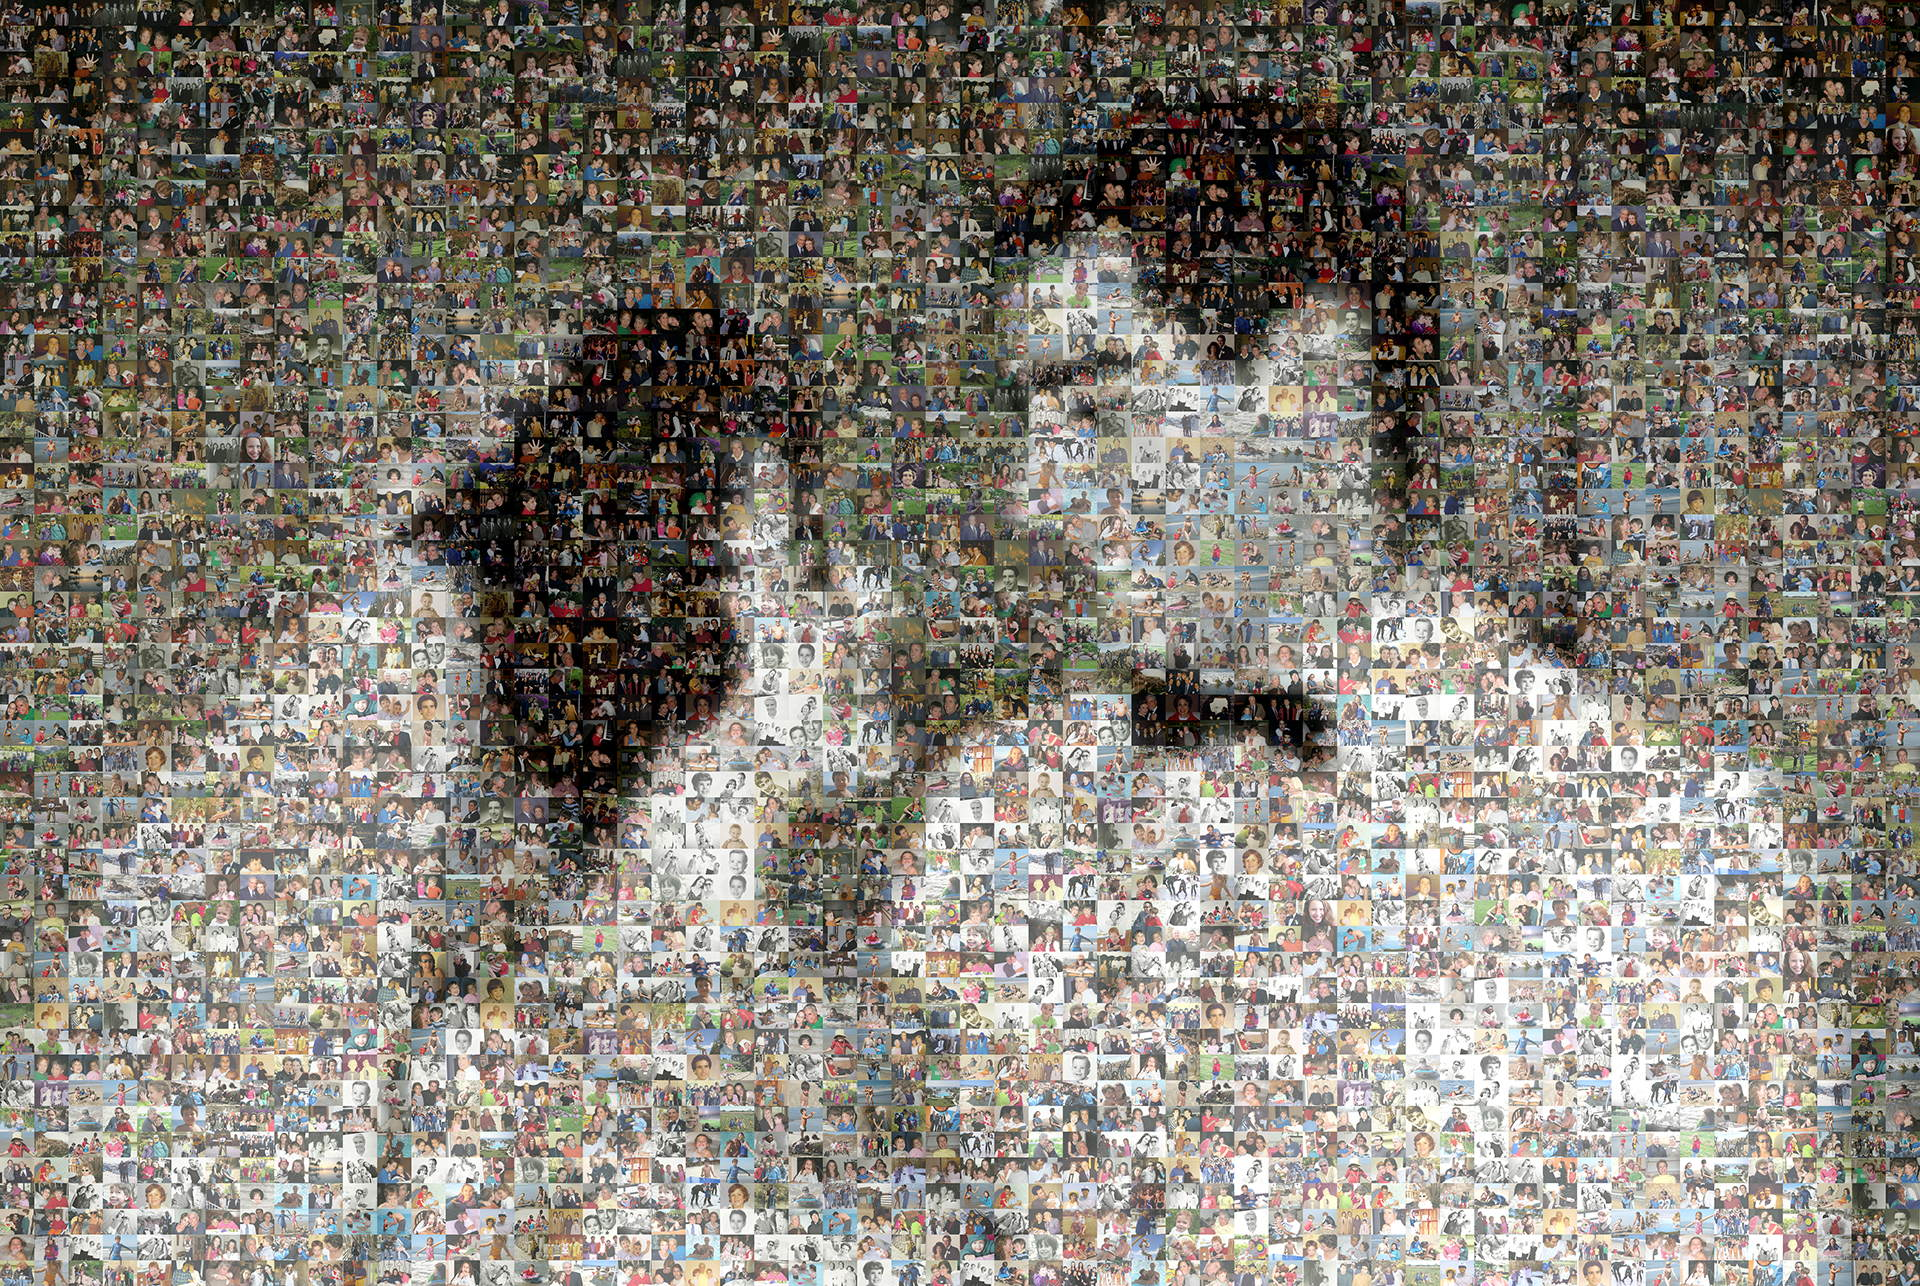 photo mosaic created using 607 lifetime photos